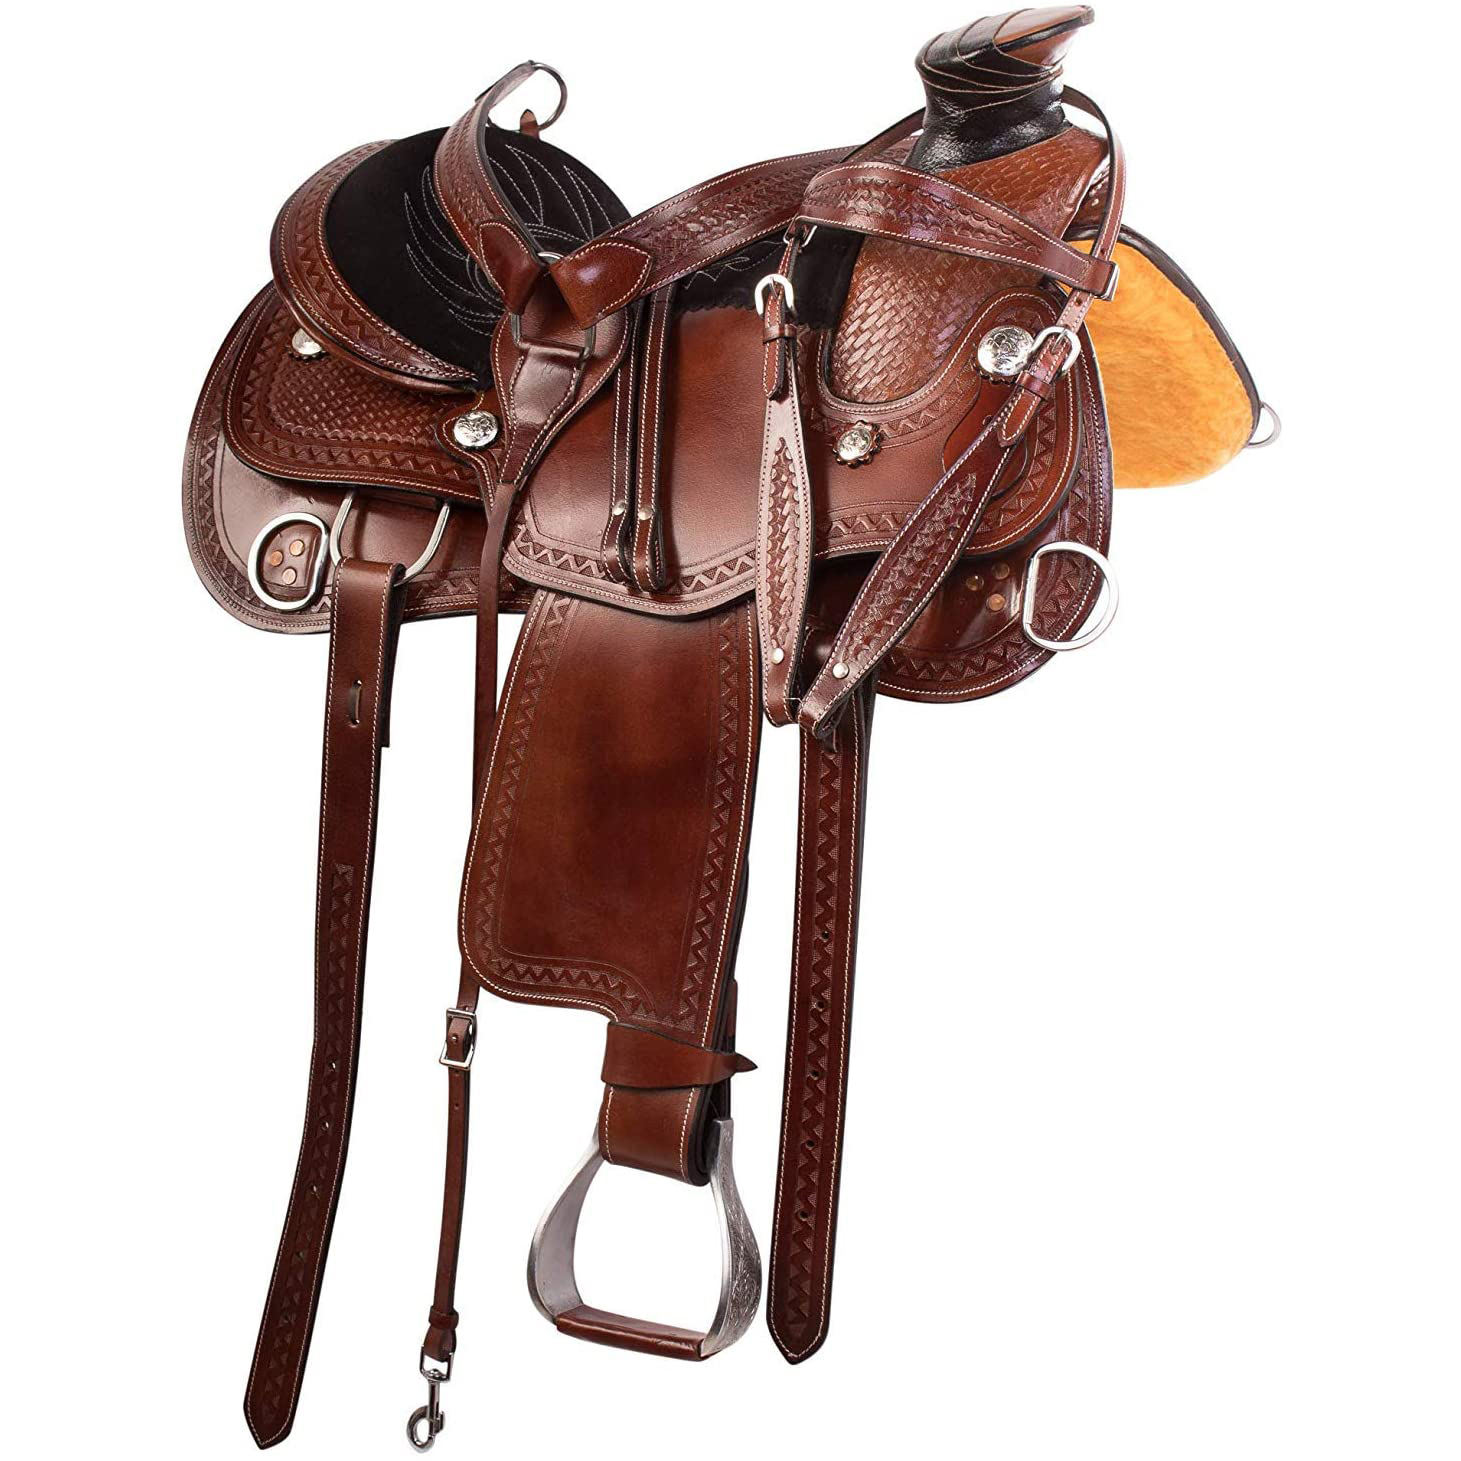 Premium Western Leather Roping Ranch Work Custom Horse Saddle Tack By A.H. SADDLERY